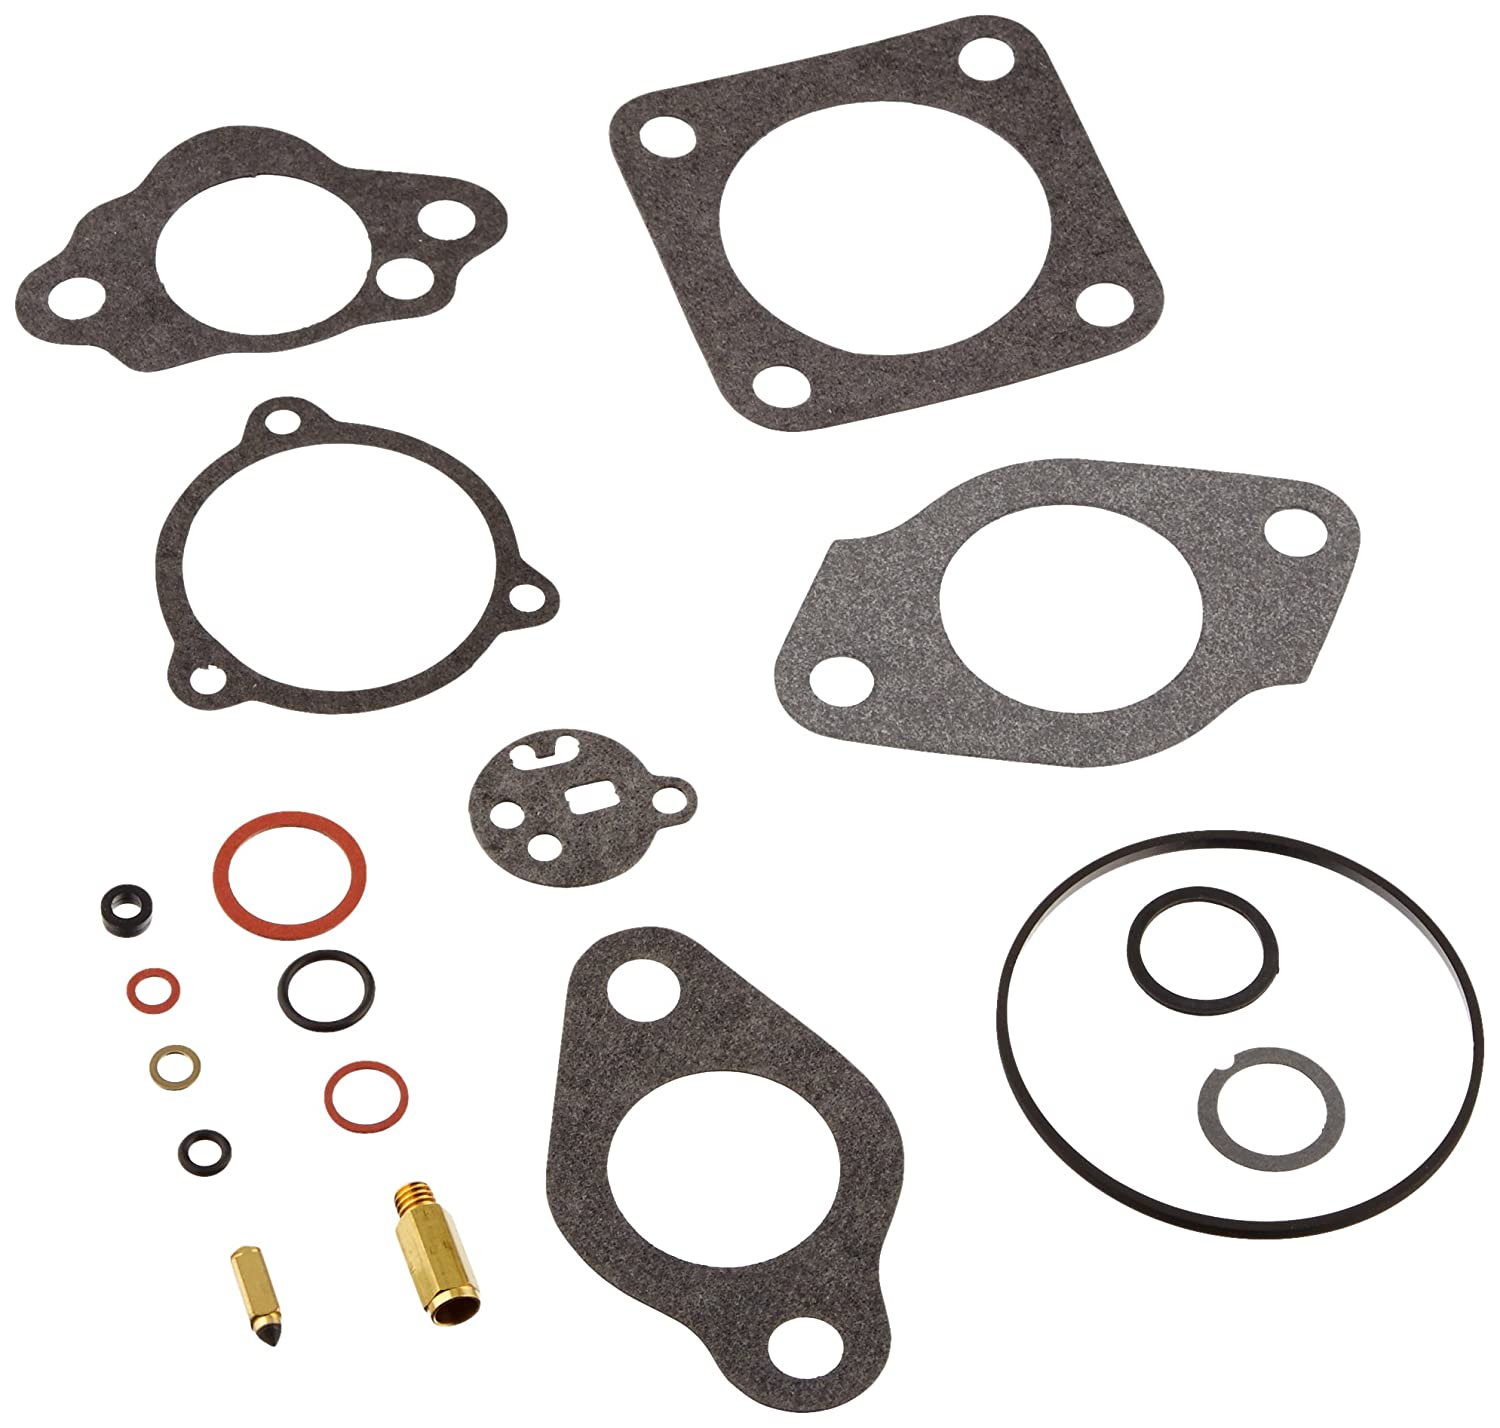 Karbay Carburetor Rebuild Kit For Wisconsin engine VH4D VHD